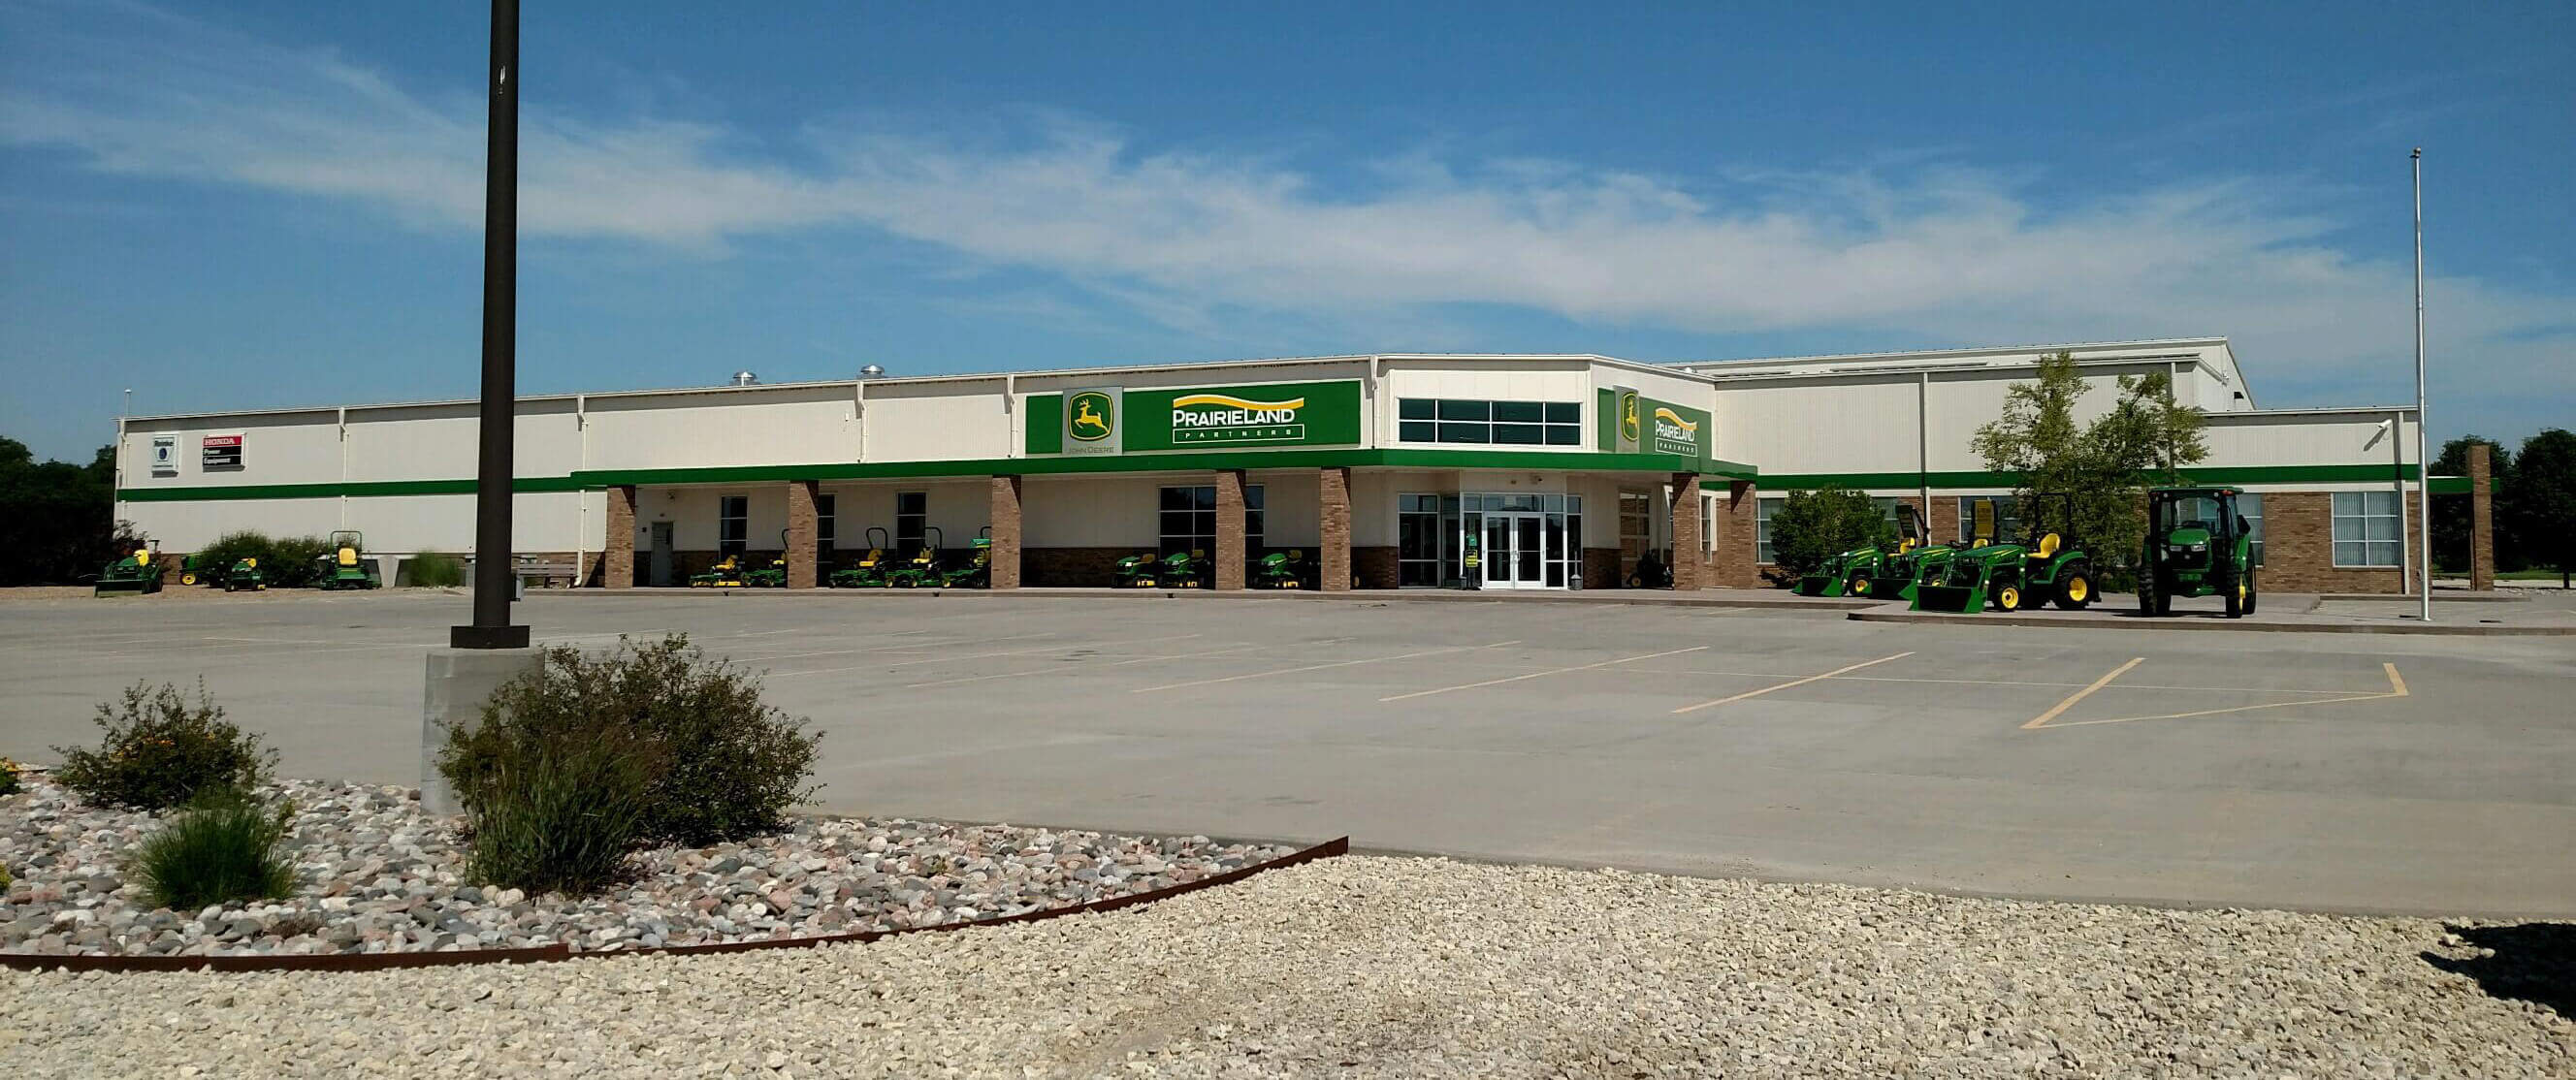 Commercial Glass Repair in Cloud County, KS